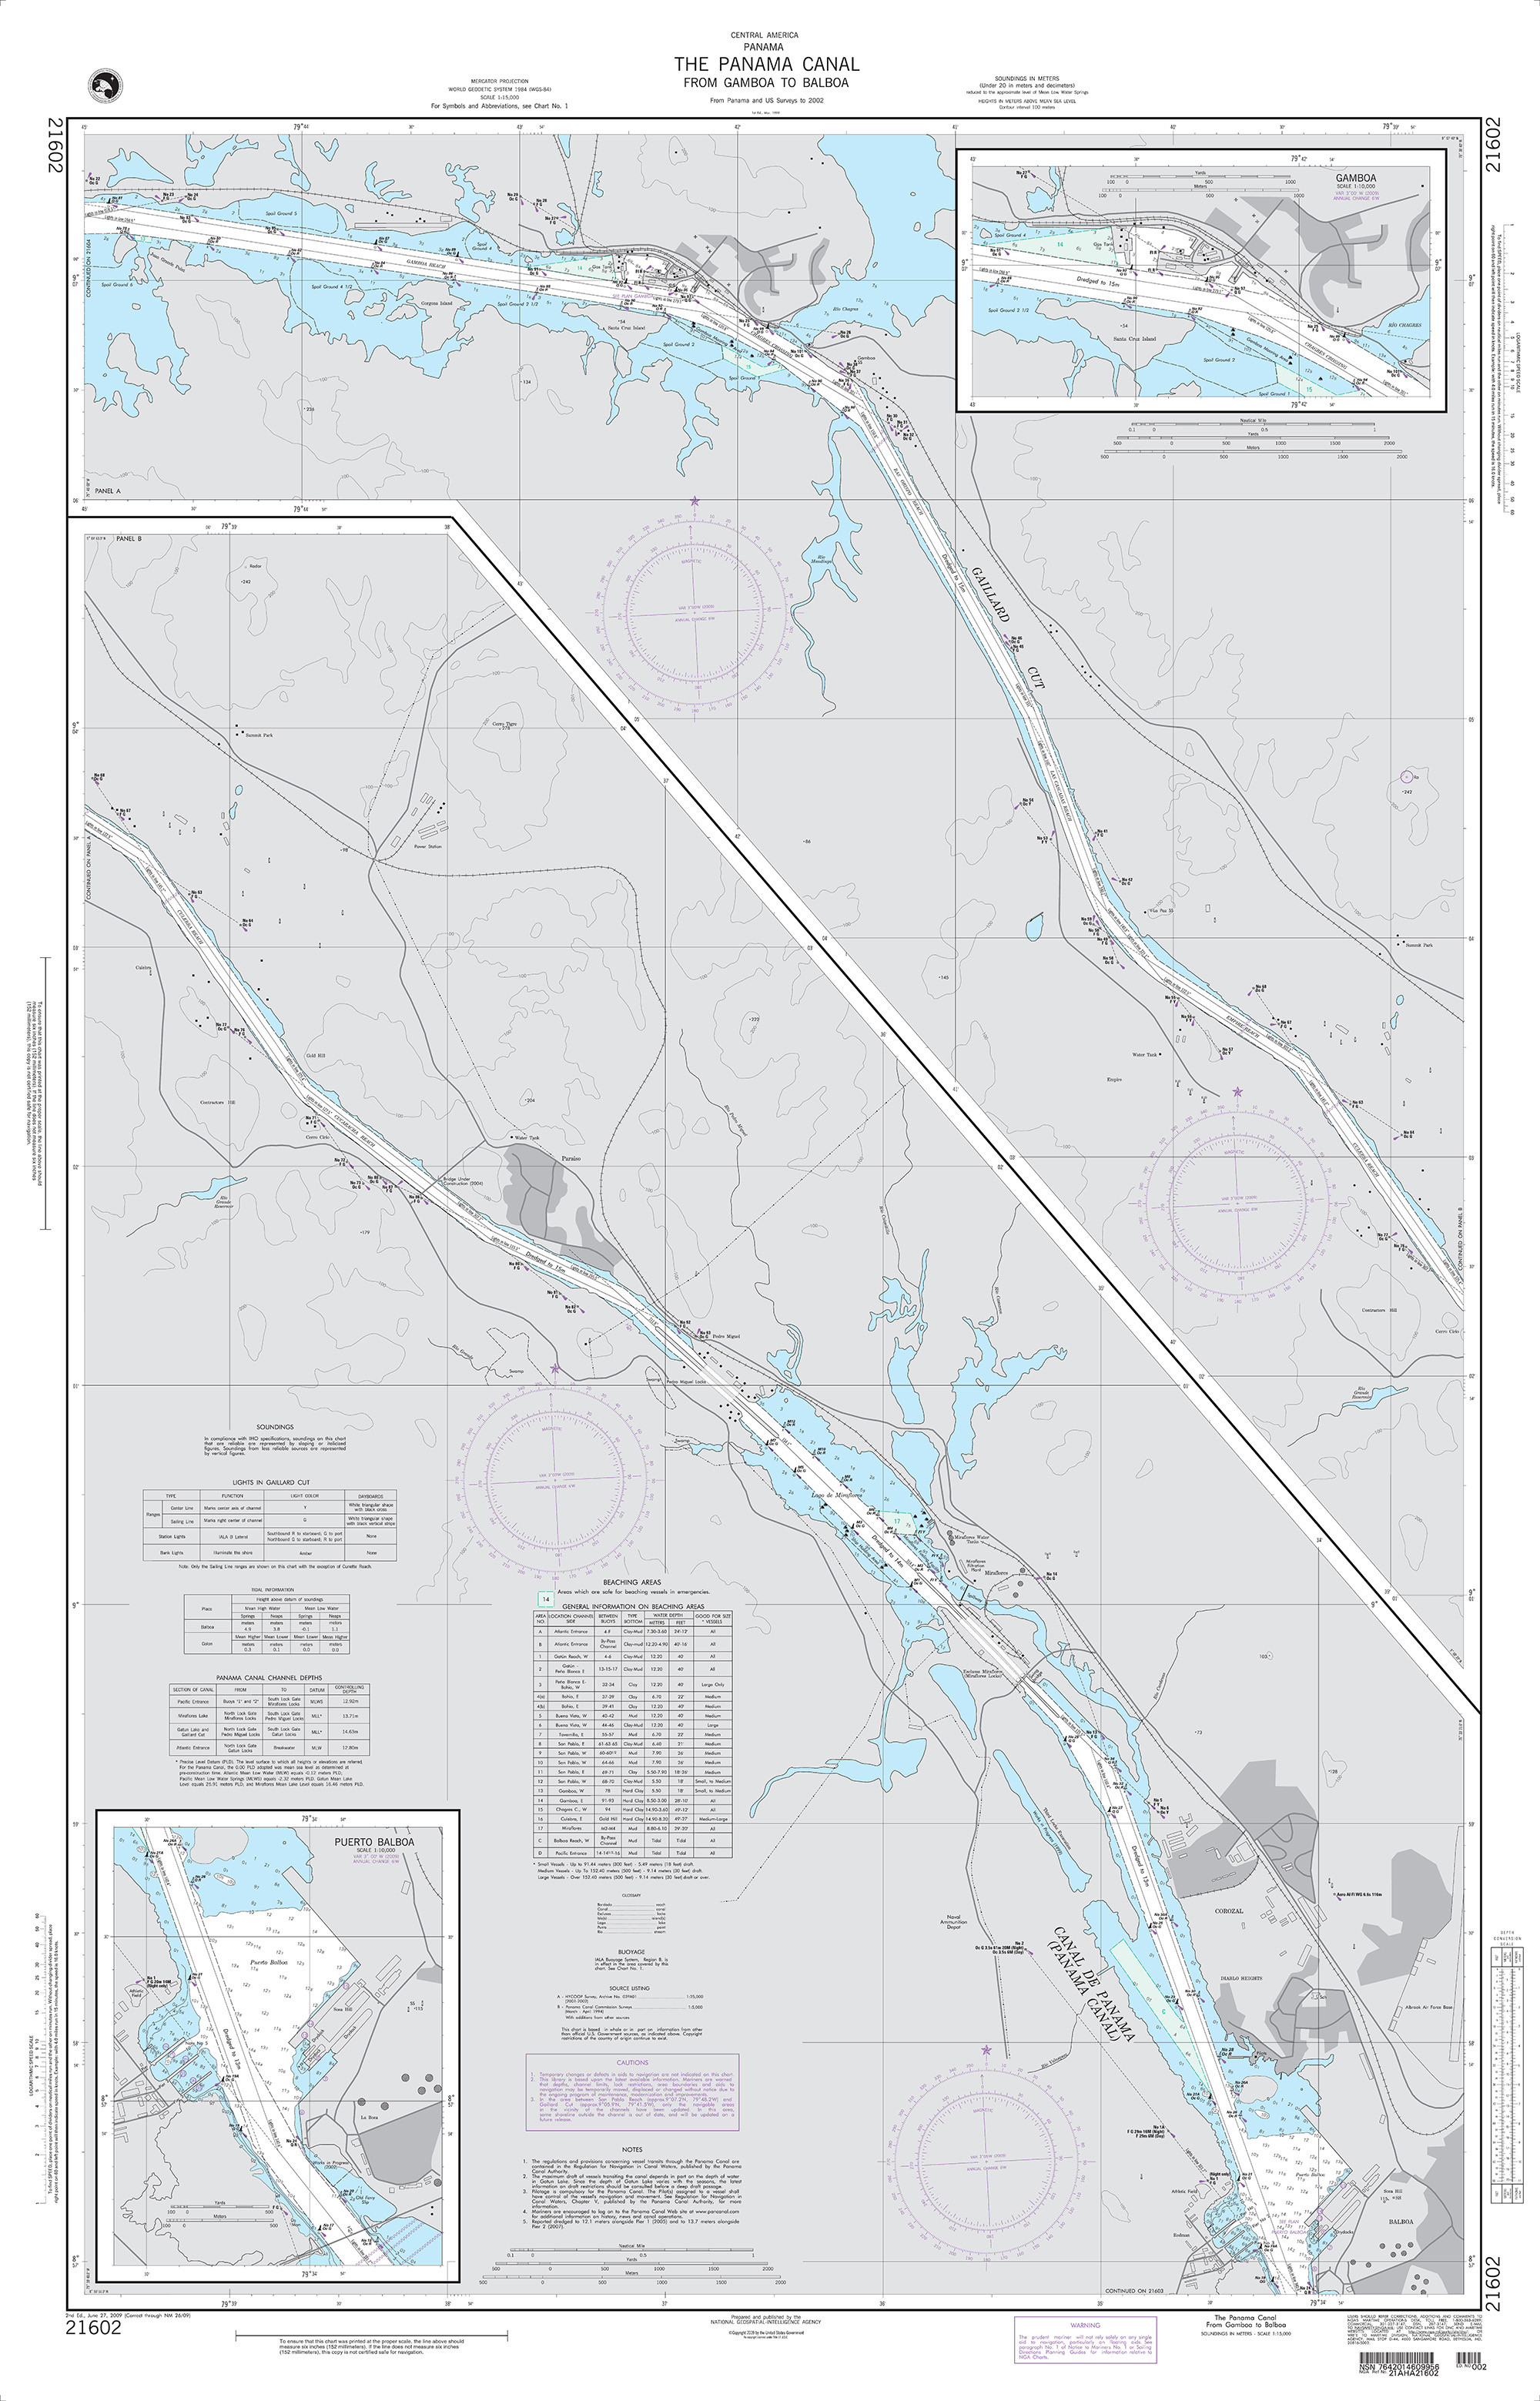 NGA Nautical Chart - 21602 The Panama Canal from Gamboa to Balboa (Panama) Panels: A and B